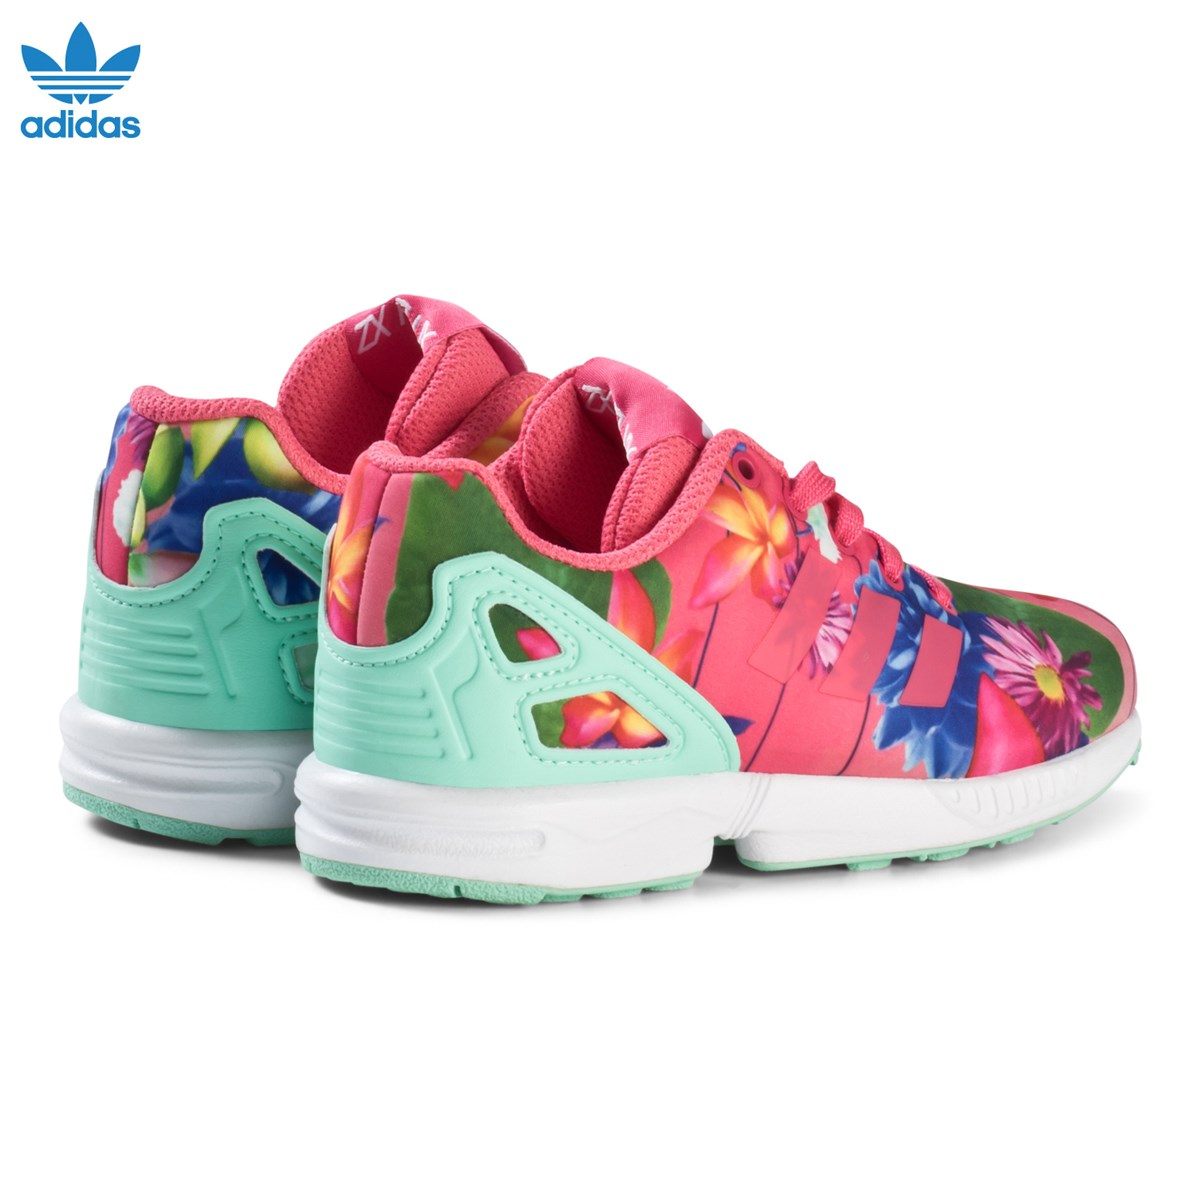 2213fdedb adidas Originals Pink Flower ZX Flux Kids Trainers